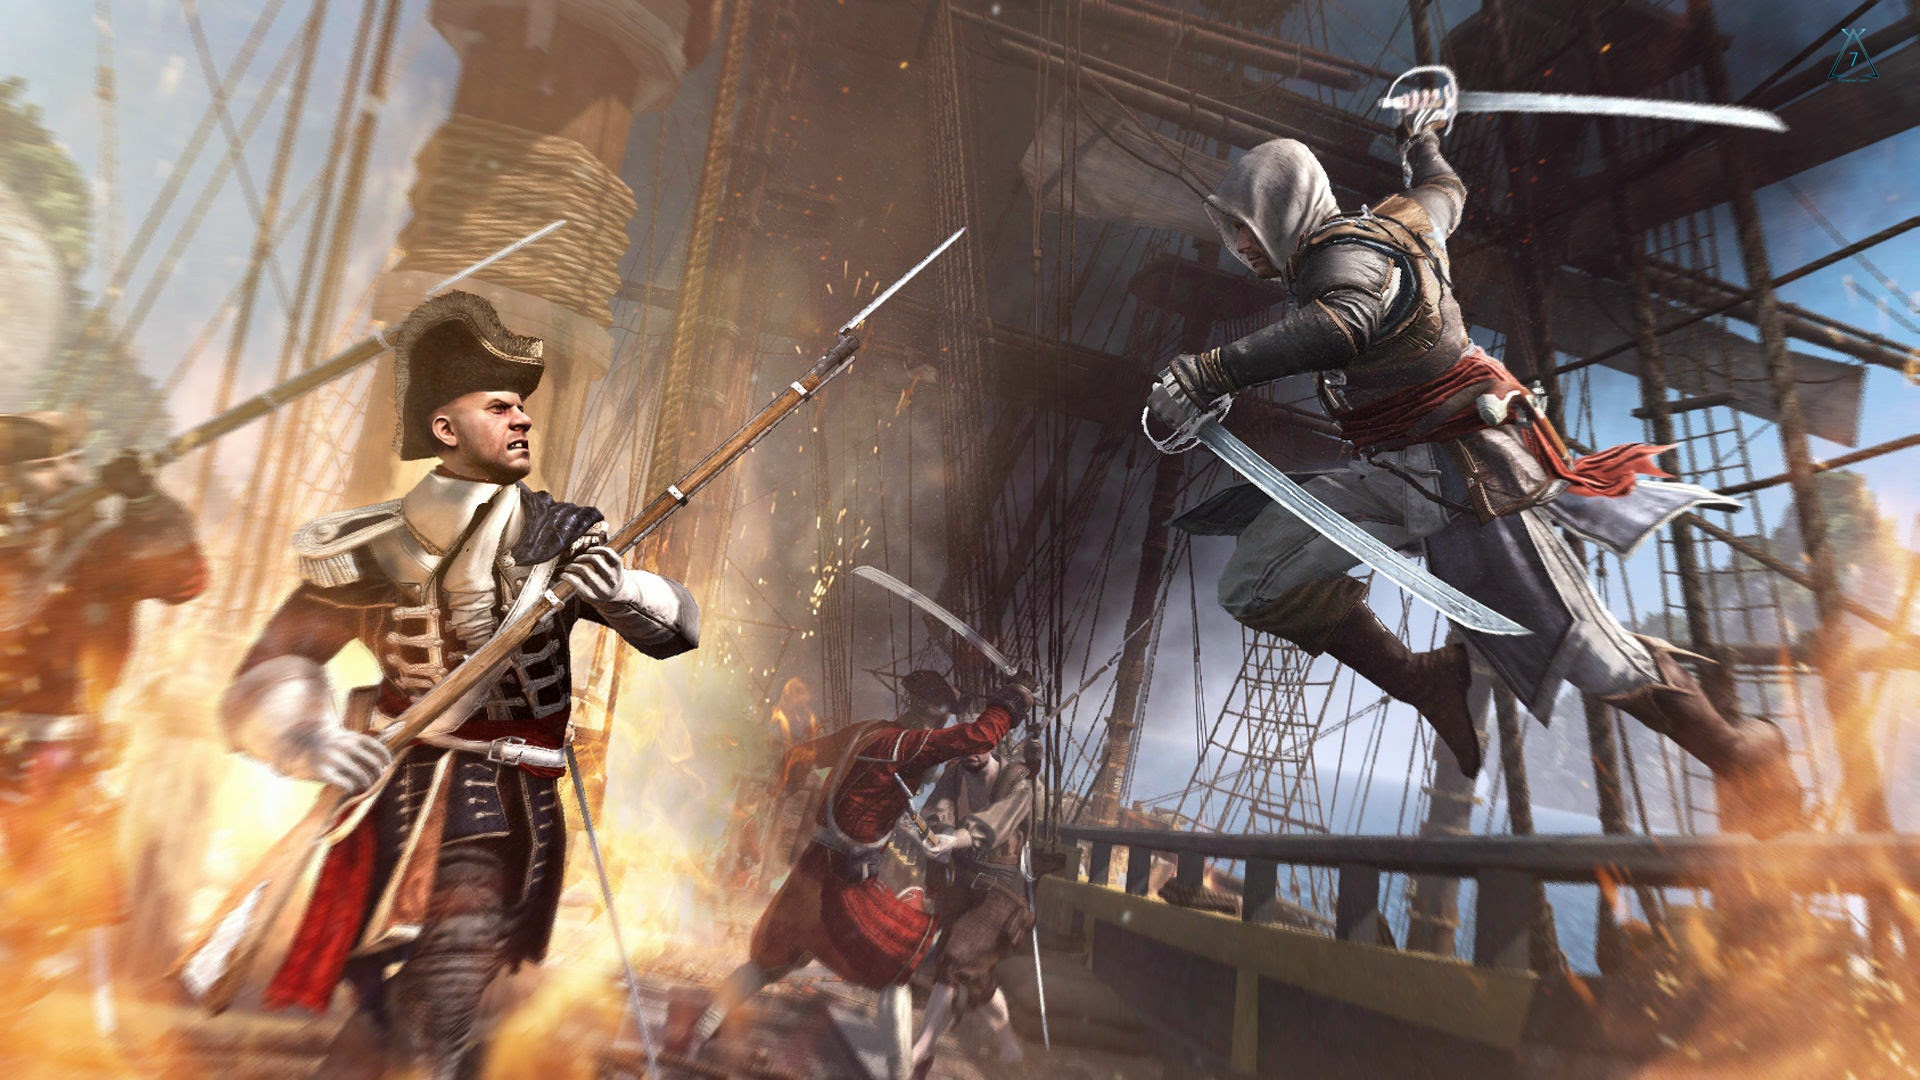 assassins creed iv black flag game wallpapers - Assassin s Creed IV Black Flag Theme ExpoThemes